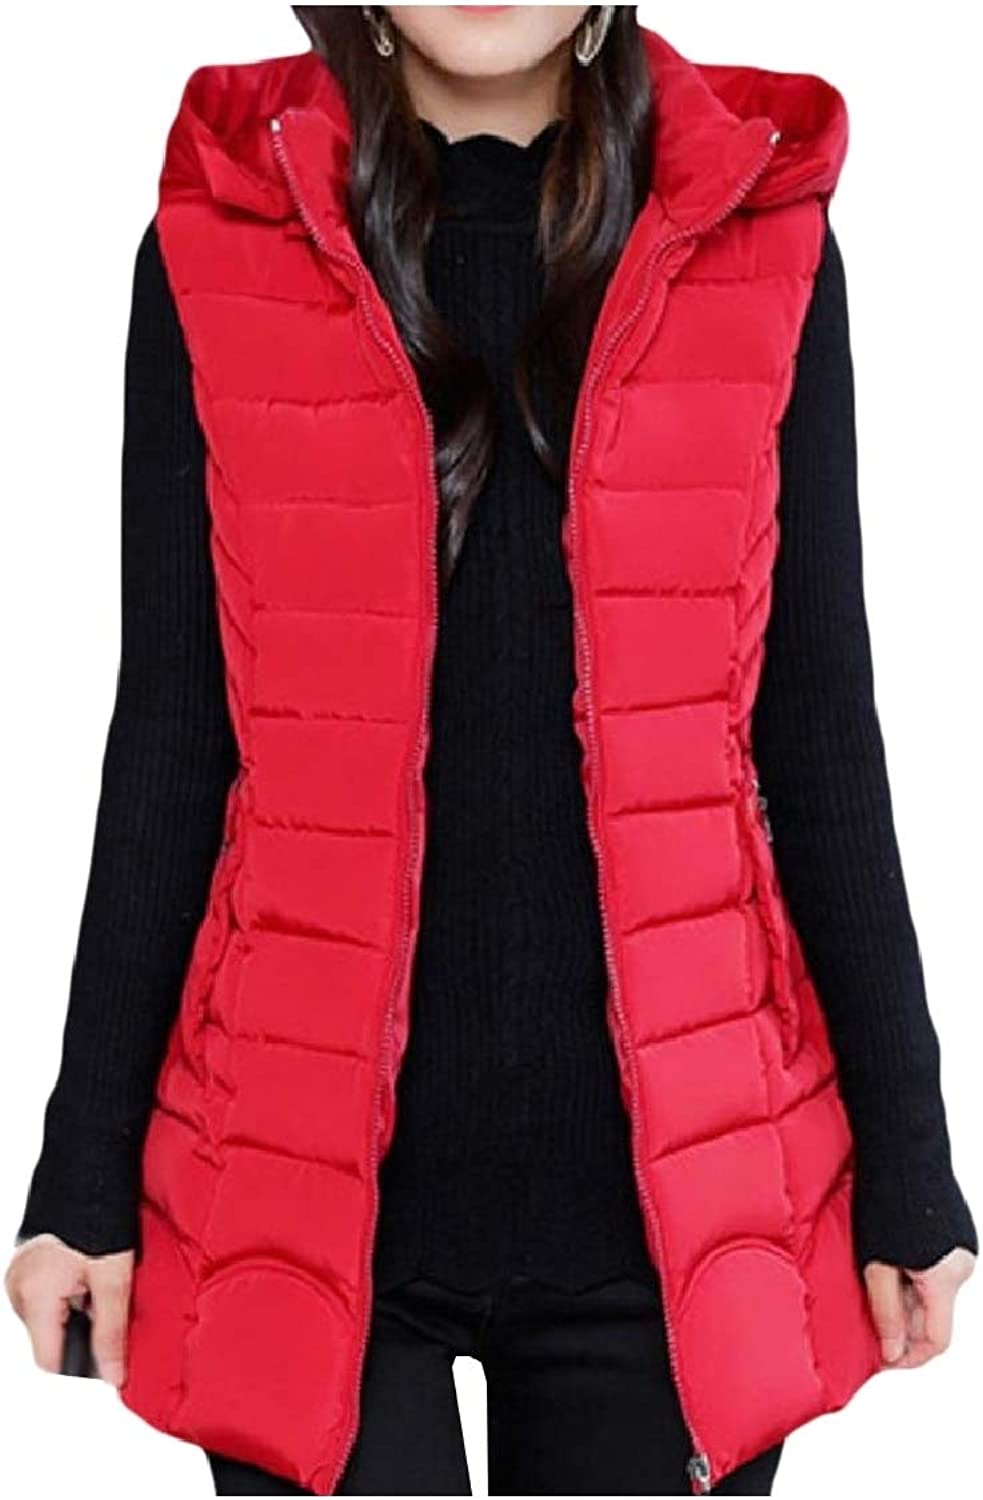 Coolhere Women Jacket Hoodie Vest Padded Thickened Fashion Outdoor Coat